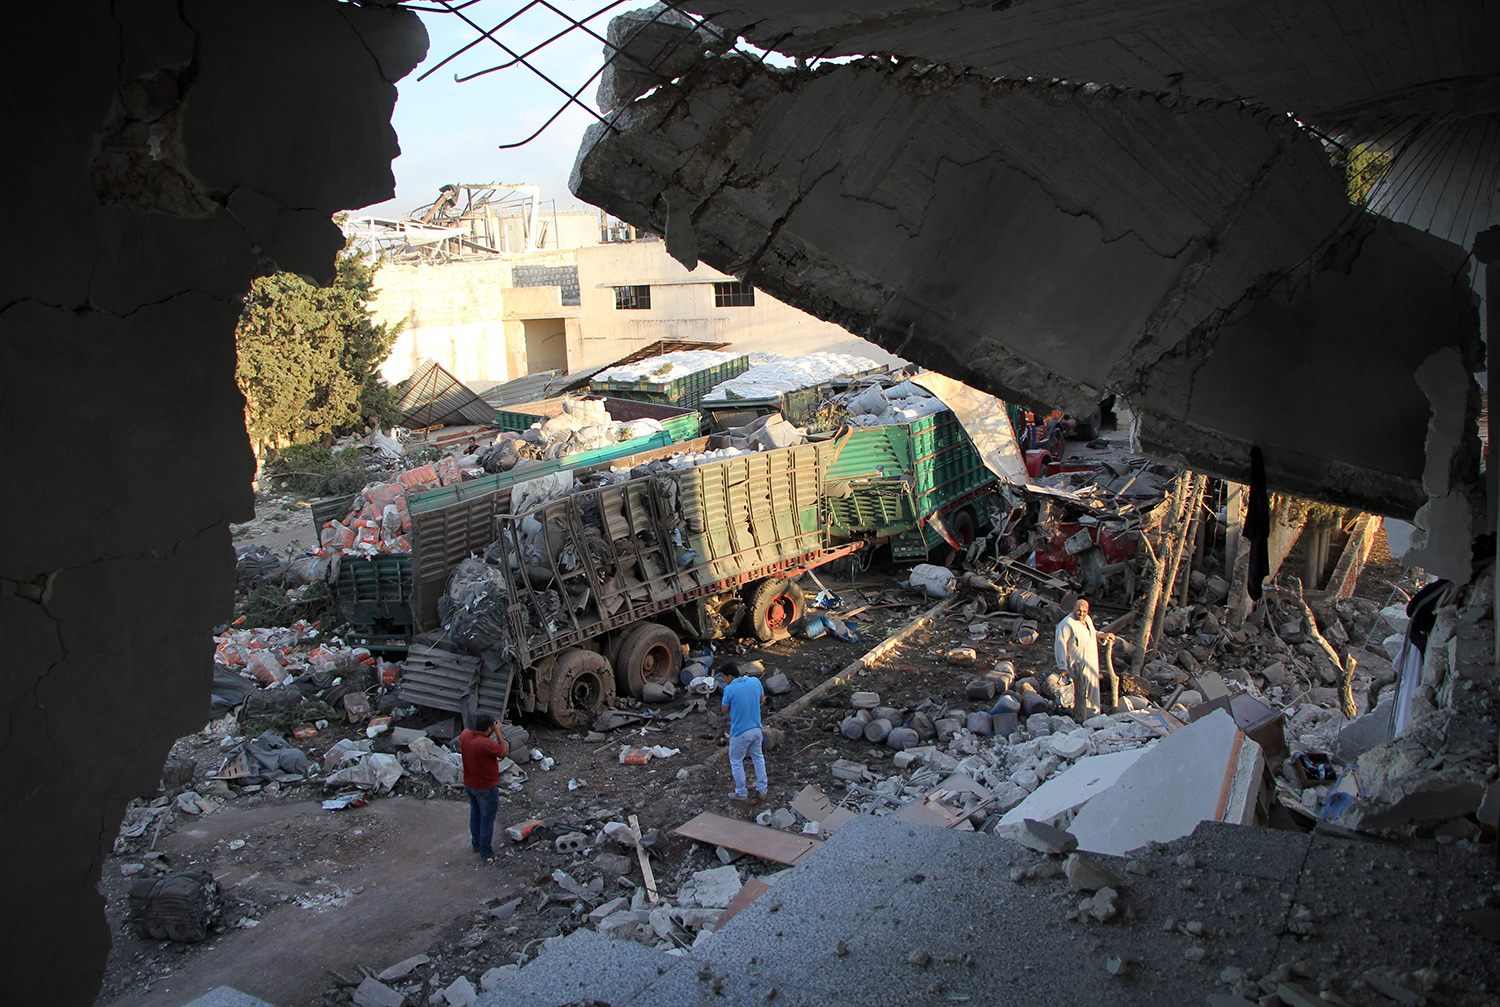 Aid is seen strewn across the floor in the town of Orum al-Kubra on the western outskirts of the northern Syrian city of Aleppo on September 20, 2016, the morning after a convoy delivering aid was hit by a deadly air strike. The UN said at least 18 trucks in the 31-vehicle convoy were destroyed en route to deliver humanitarian assistance to the hard-to-reach town. / AFP PHOTO / Omar haj kadour / TT / kod 444